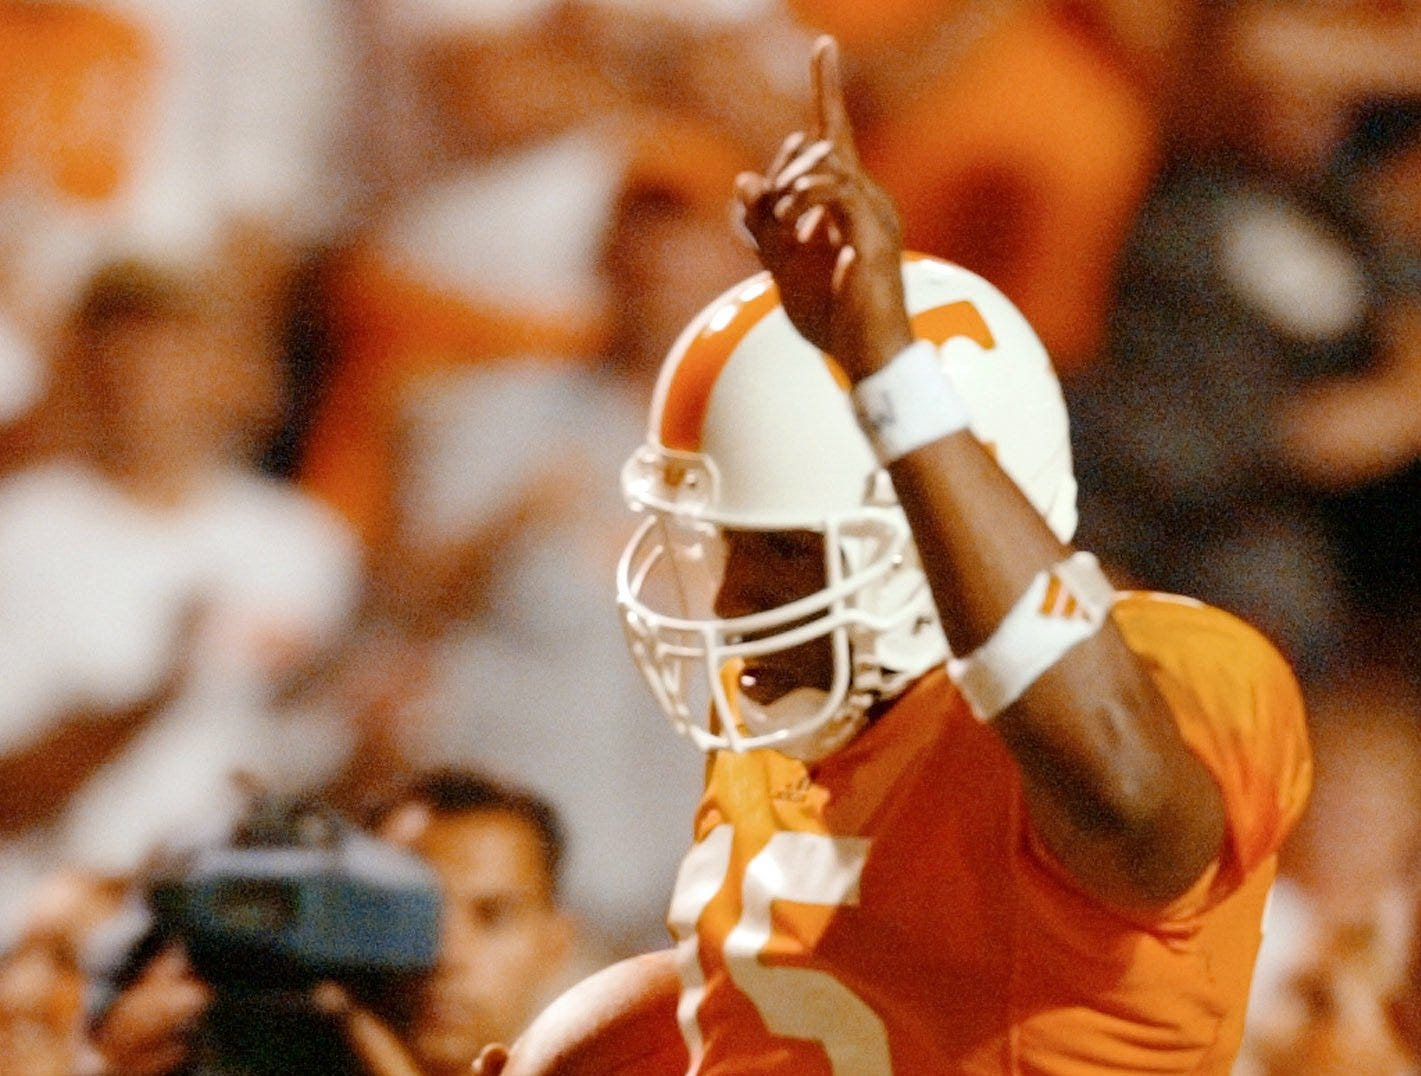 Tennessee's Kelley Washington runs for a touchdown in the fourth quarter against Rutgers, Saturday, Sept. 28, 2002, in Knoxville, Tenn. Washington had seven receptions for 197 yards to lead Tennessee past Rutgers 35-14.